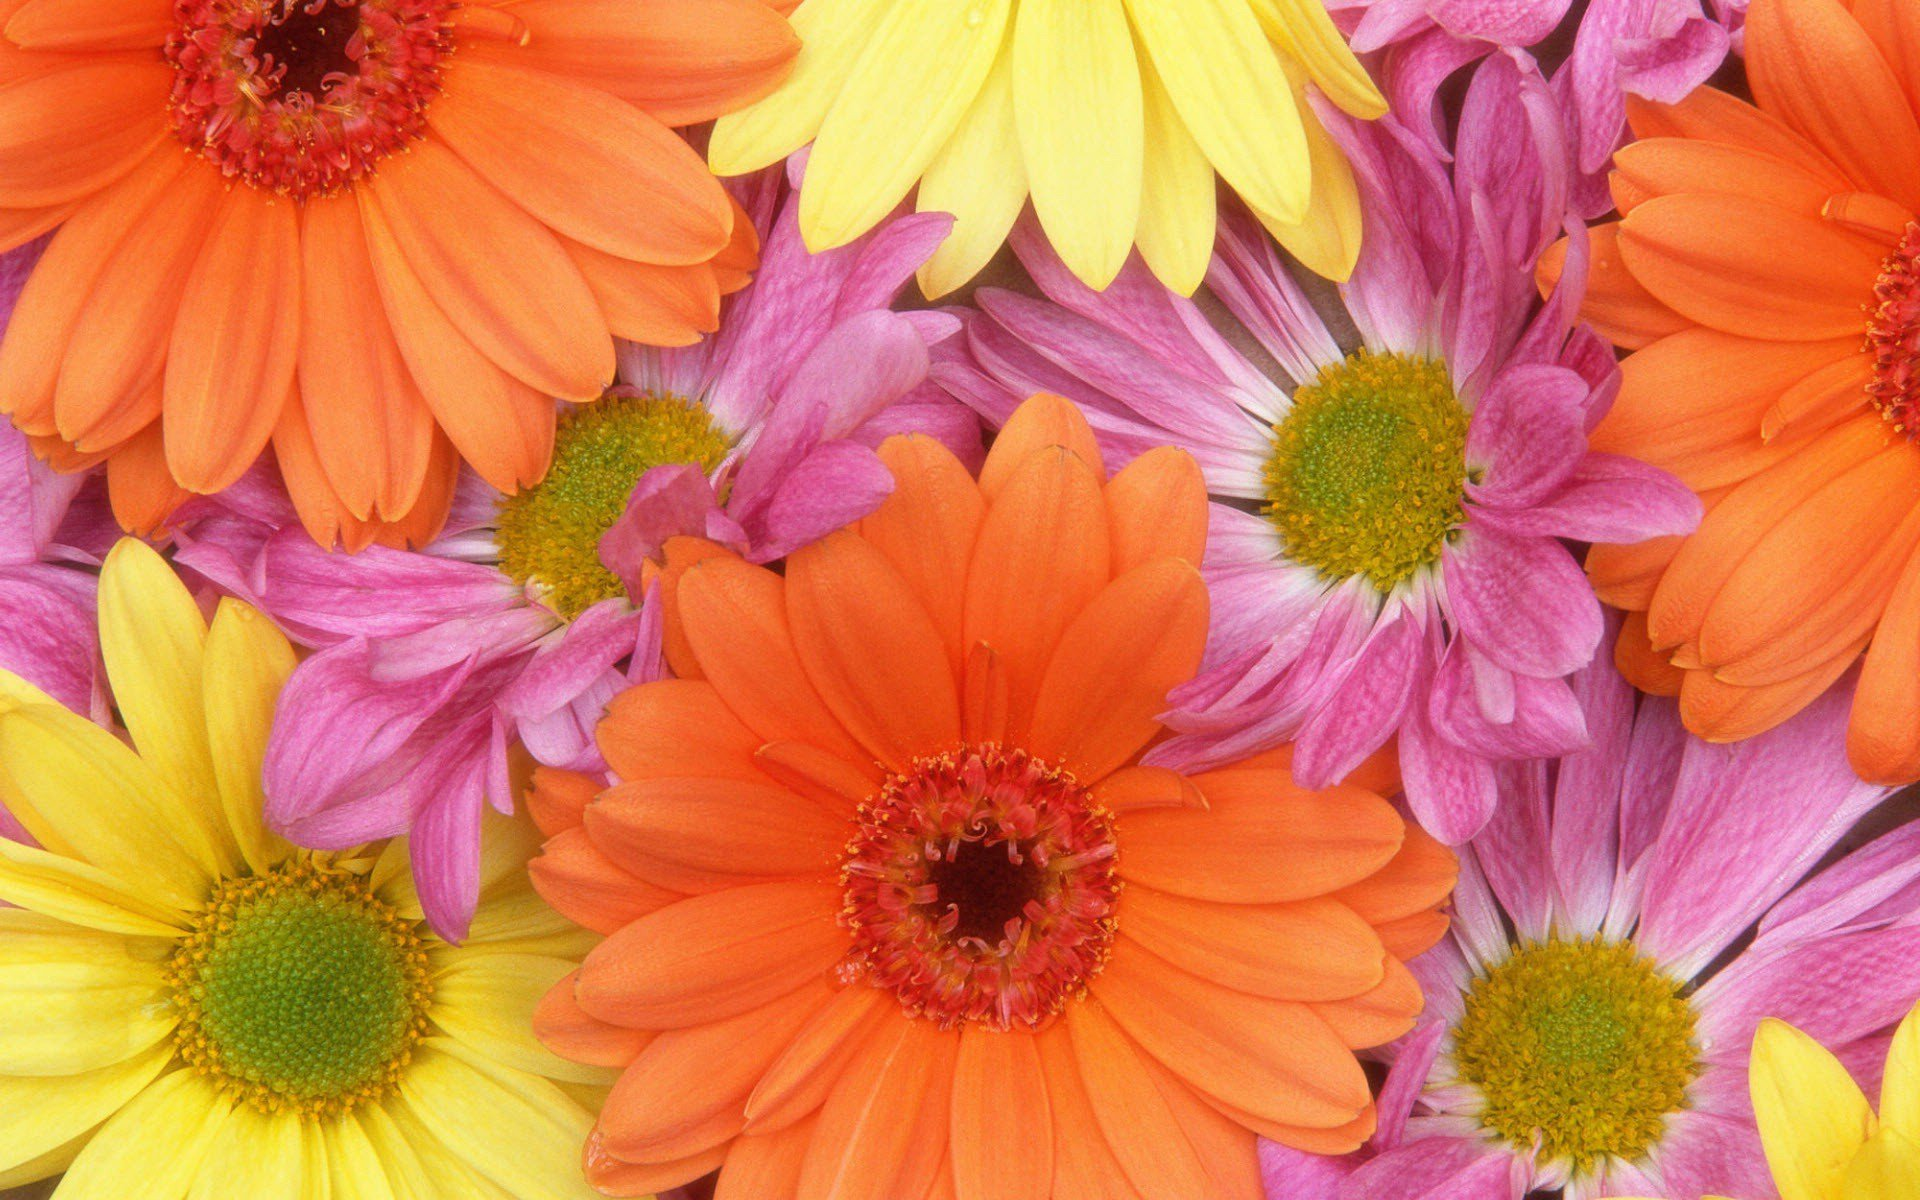 2048x1152 Colorful Daisies 2048x1152 Resolution HD 4k Wallpapers ...